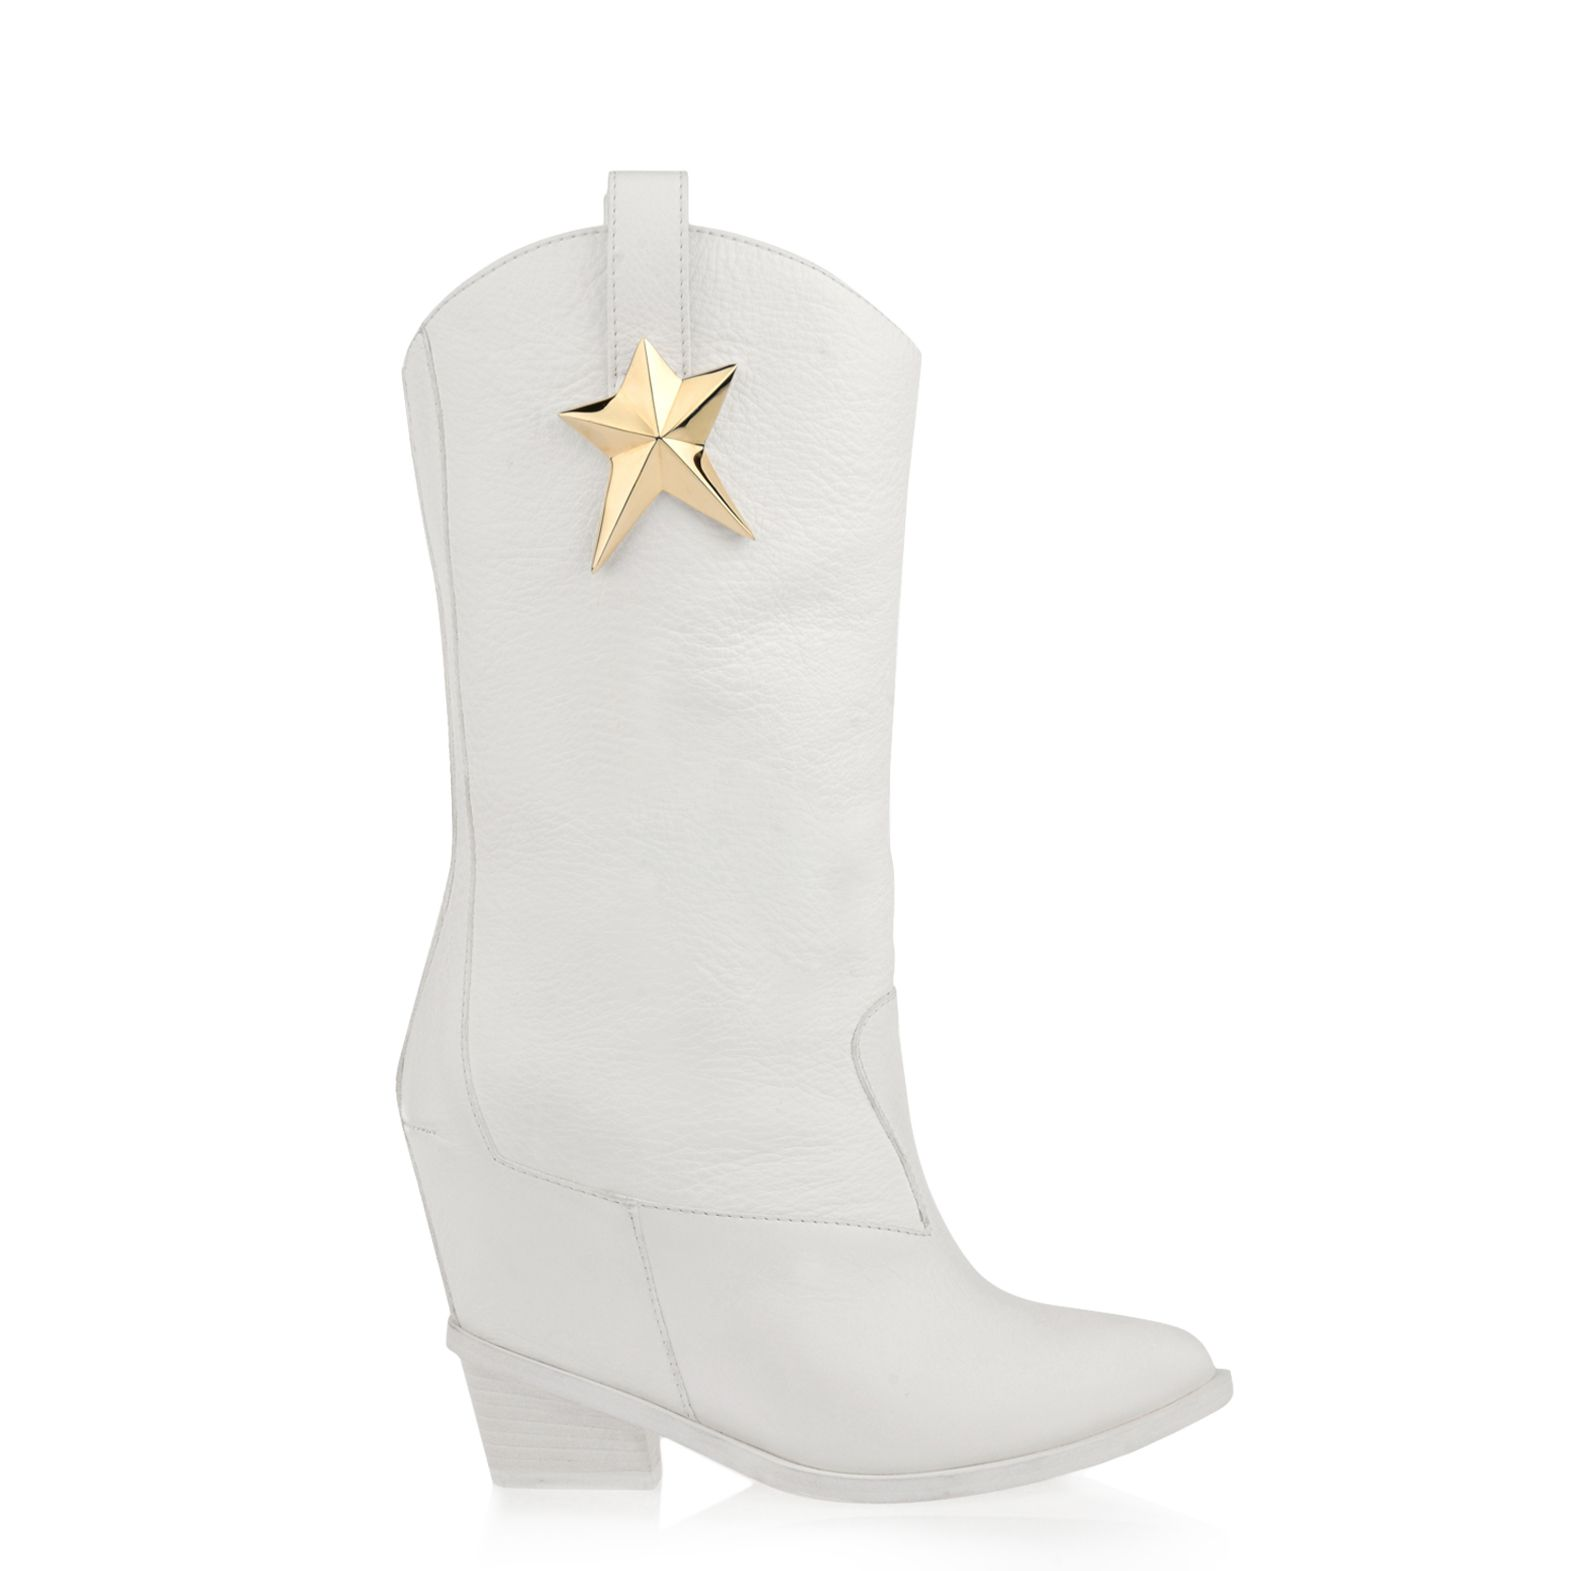 Zanotti-booties-white-star-3